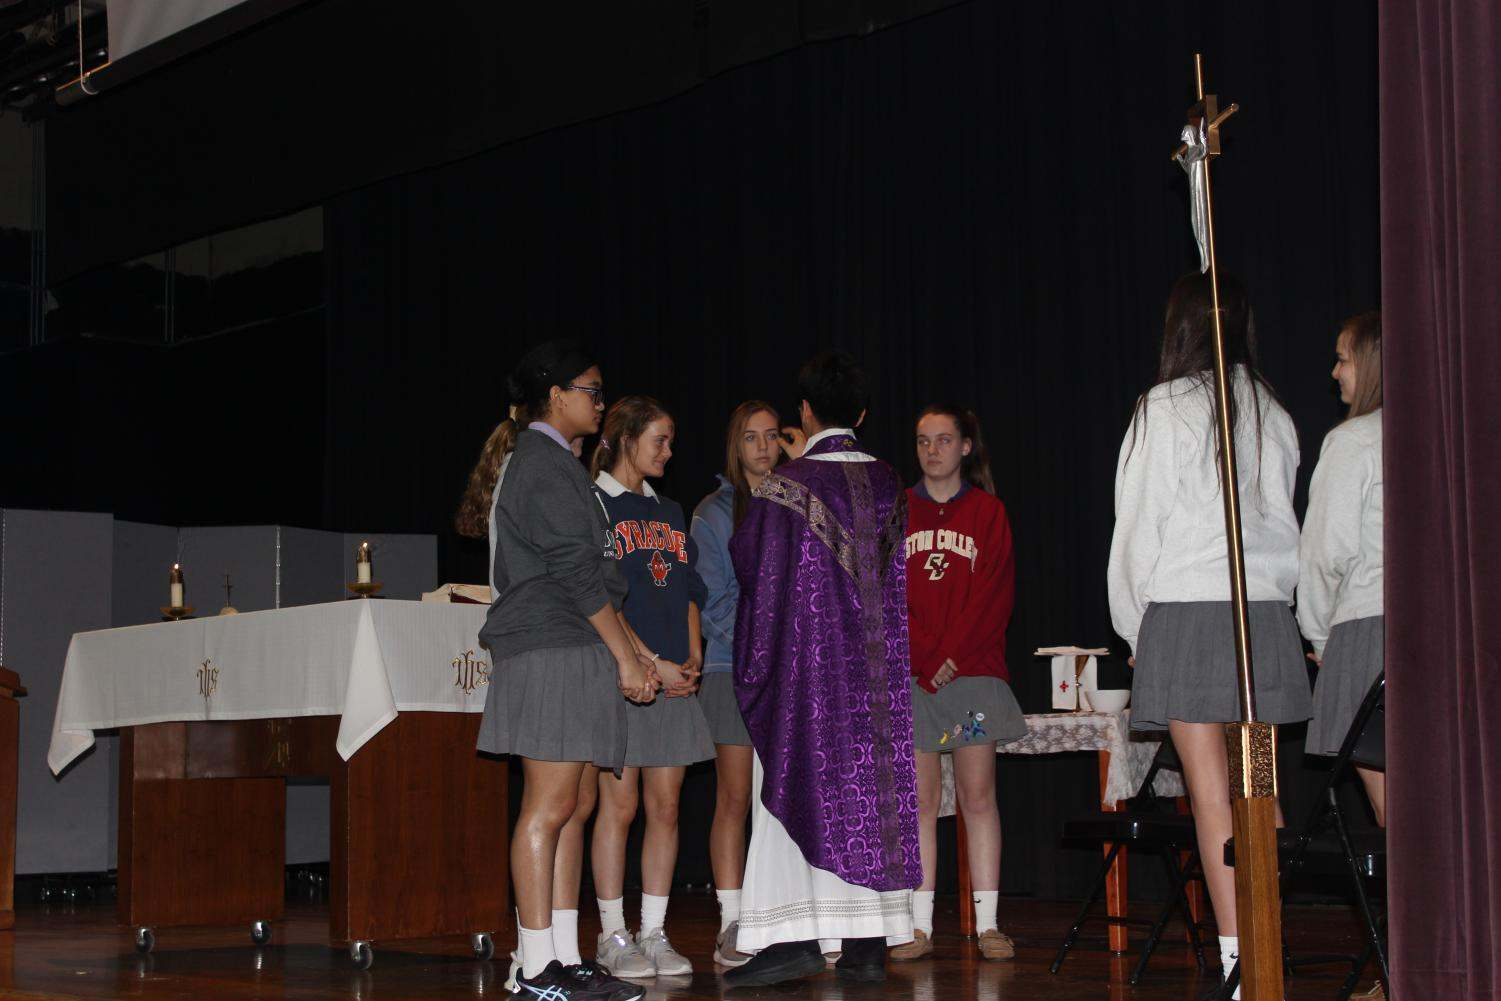 Eucharistic ministers get their ashes from Father Choi